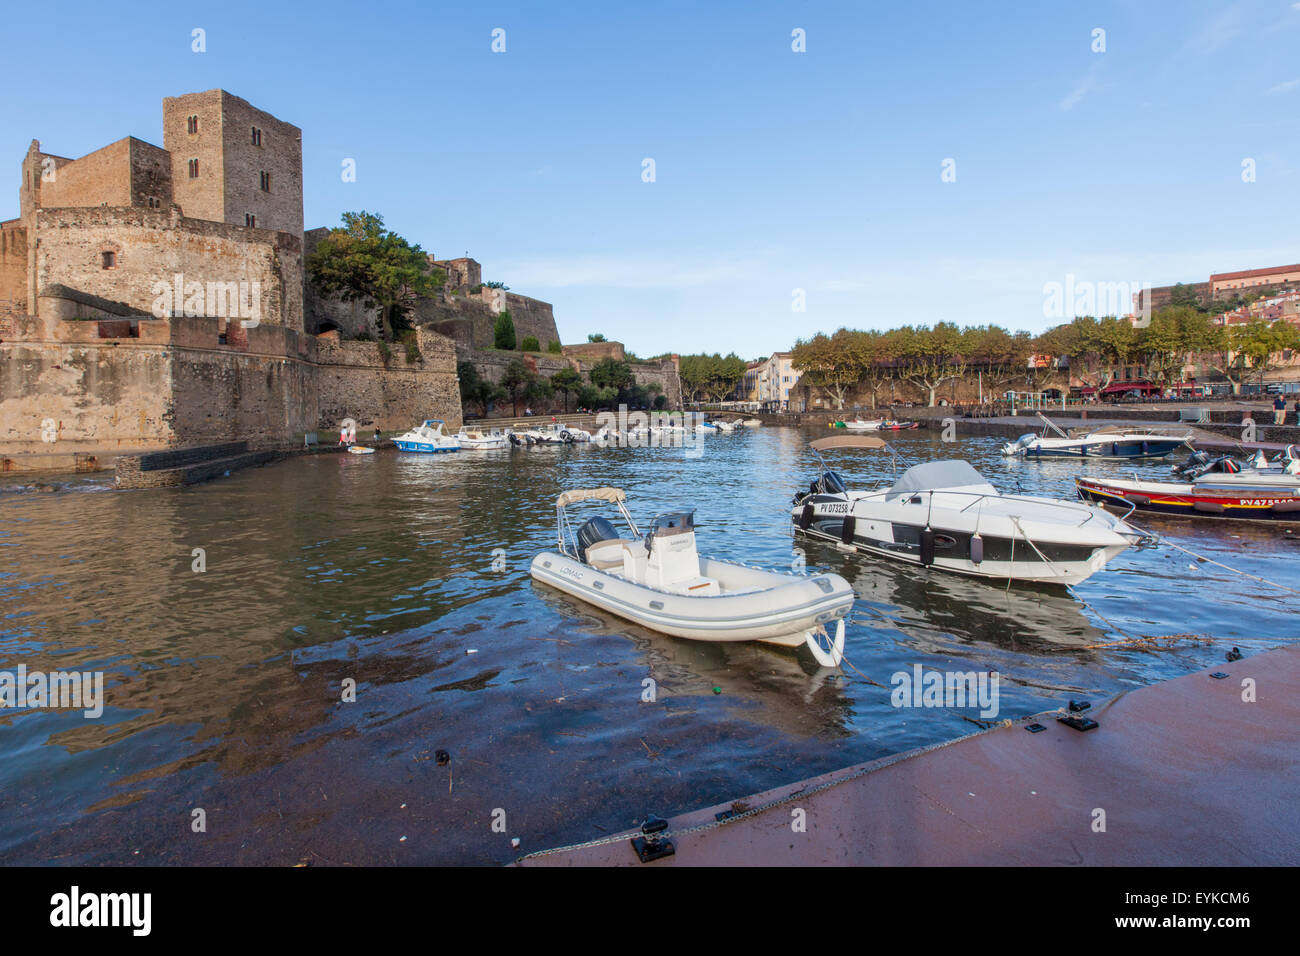 The historic Chateau in France's Collioure. Stock Photo